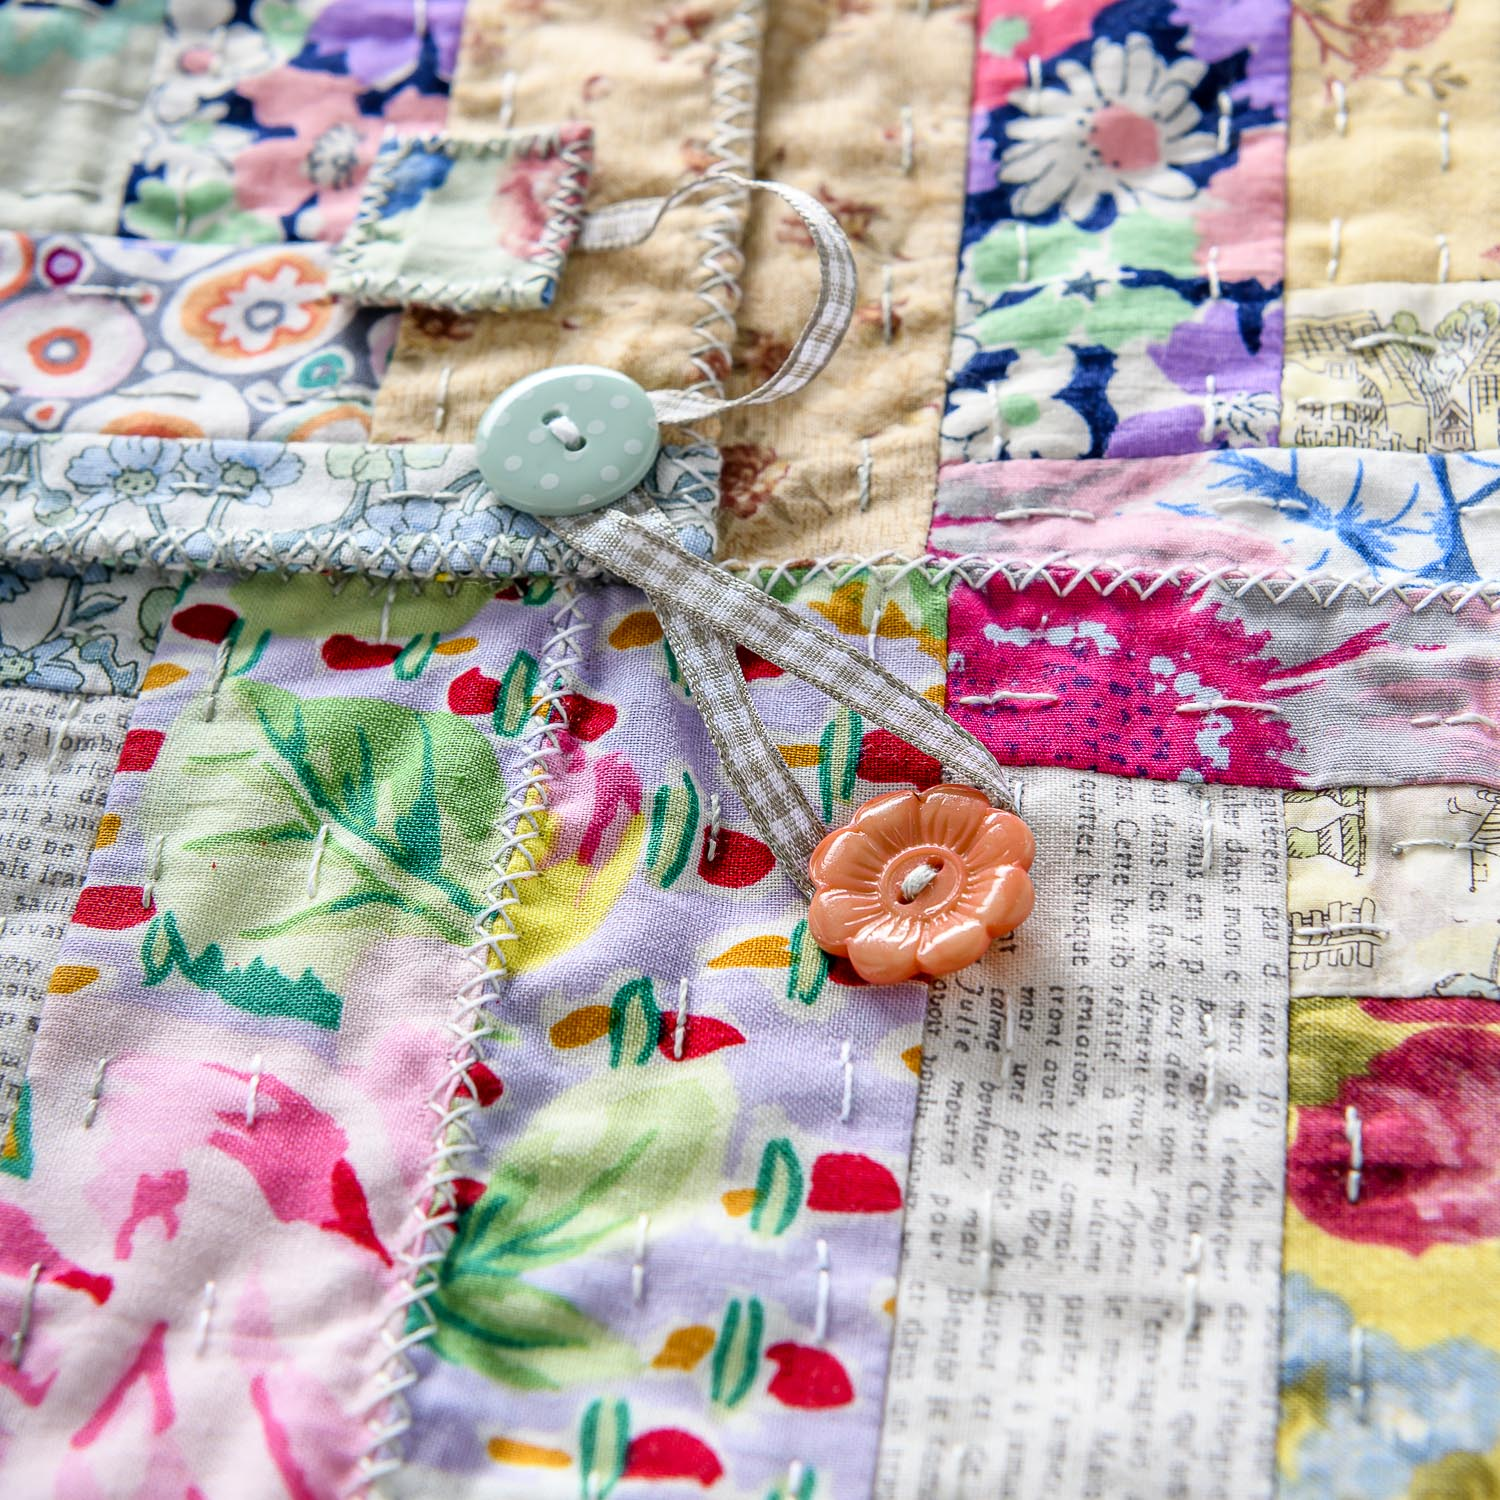 Quilted Patchworks by Carolyn Forster for Fox Chapel 210826wc853953